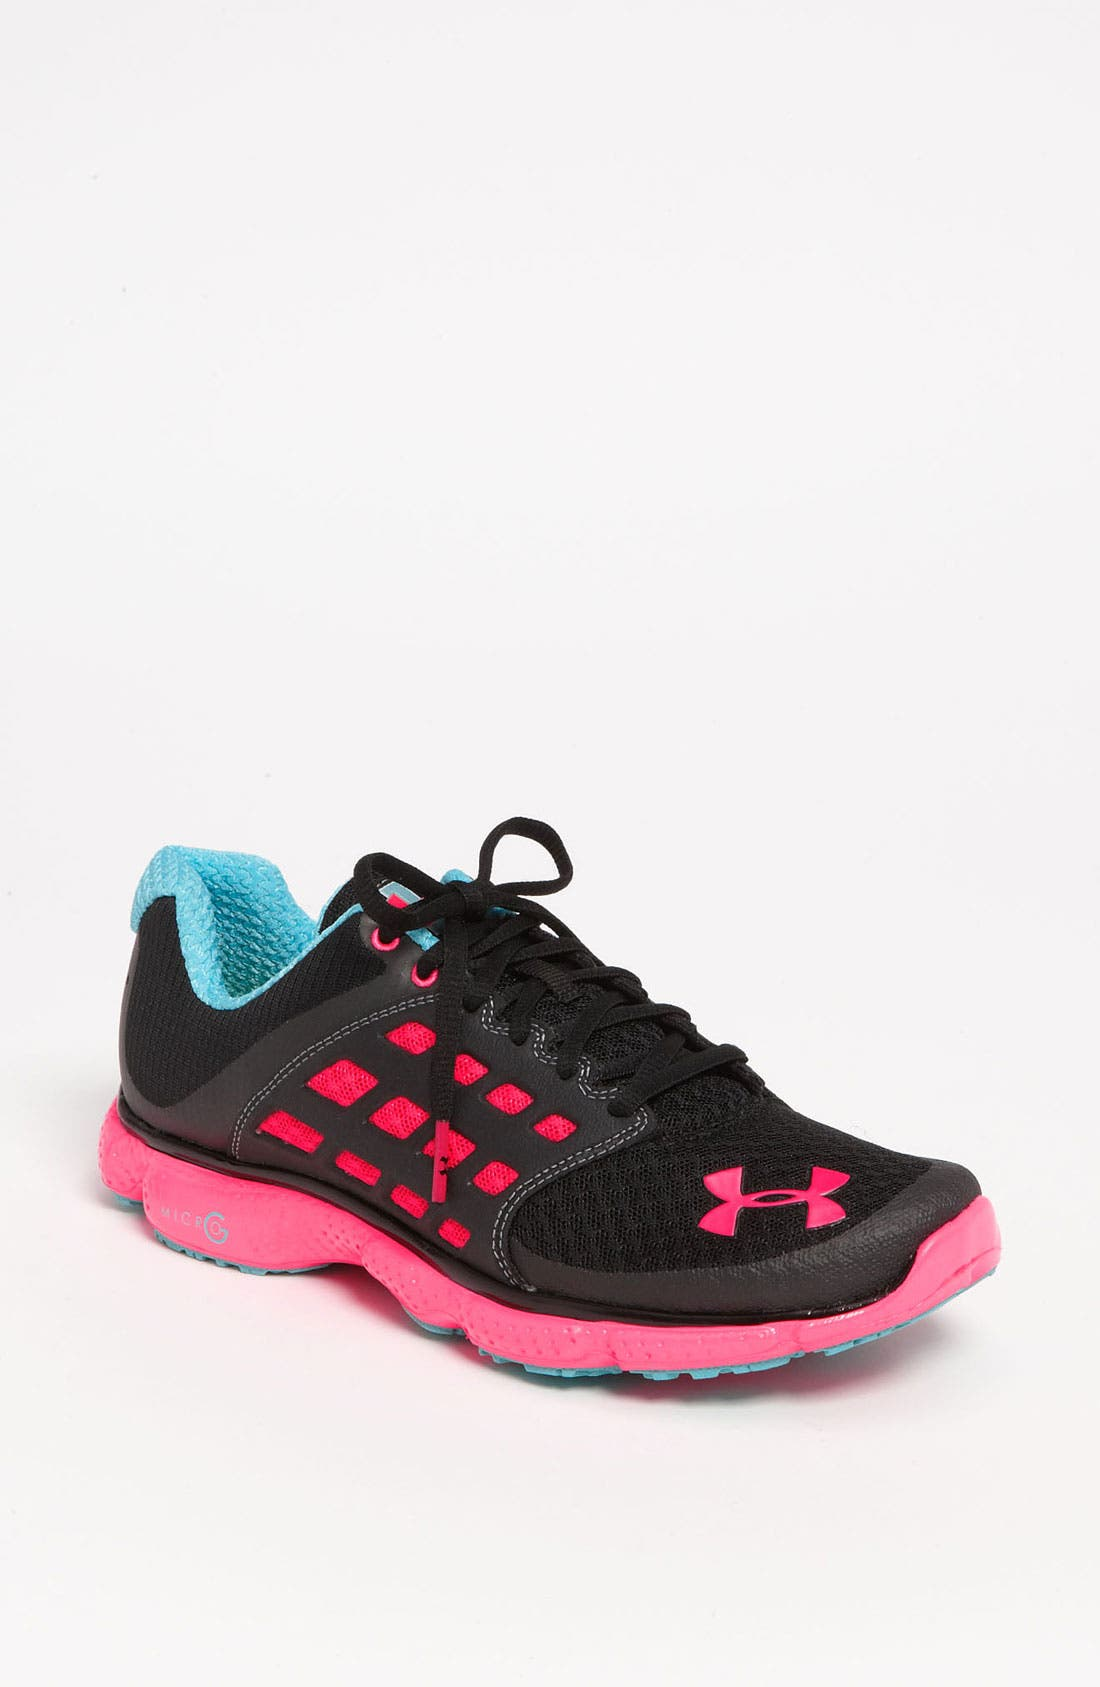 Alternate Image 1 Selected - Under Armour 'Connect' Running Shoe (Women)